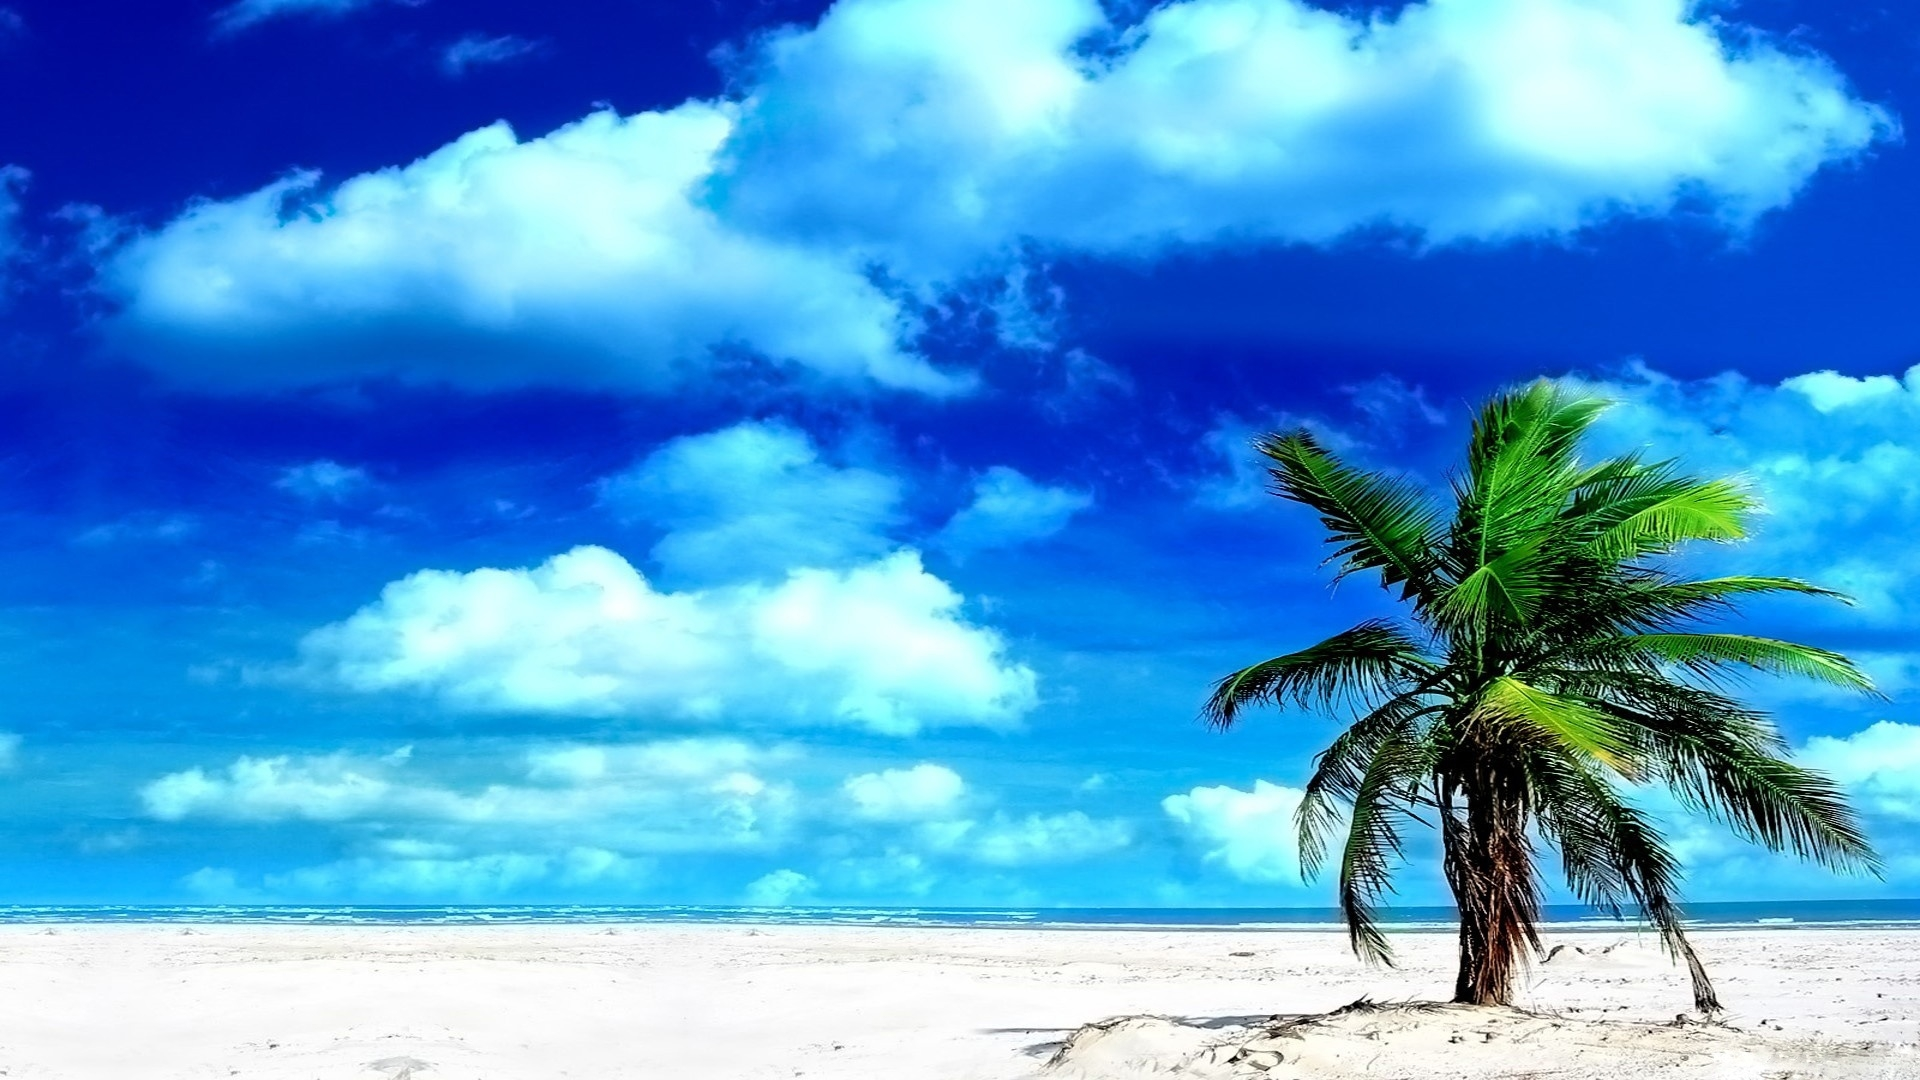 wallpapers island paradise wallpaper 1920x1080 1920x1080